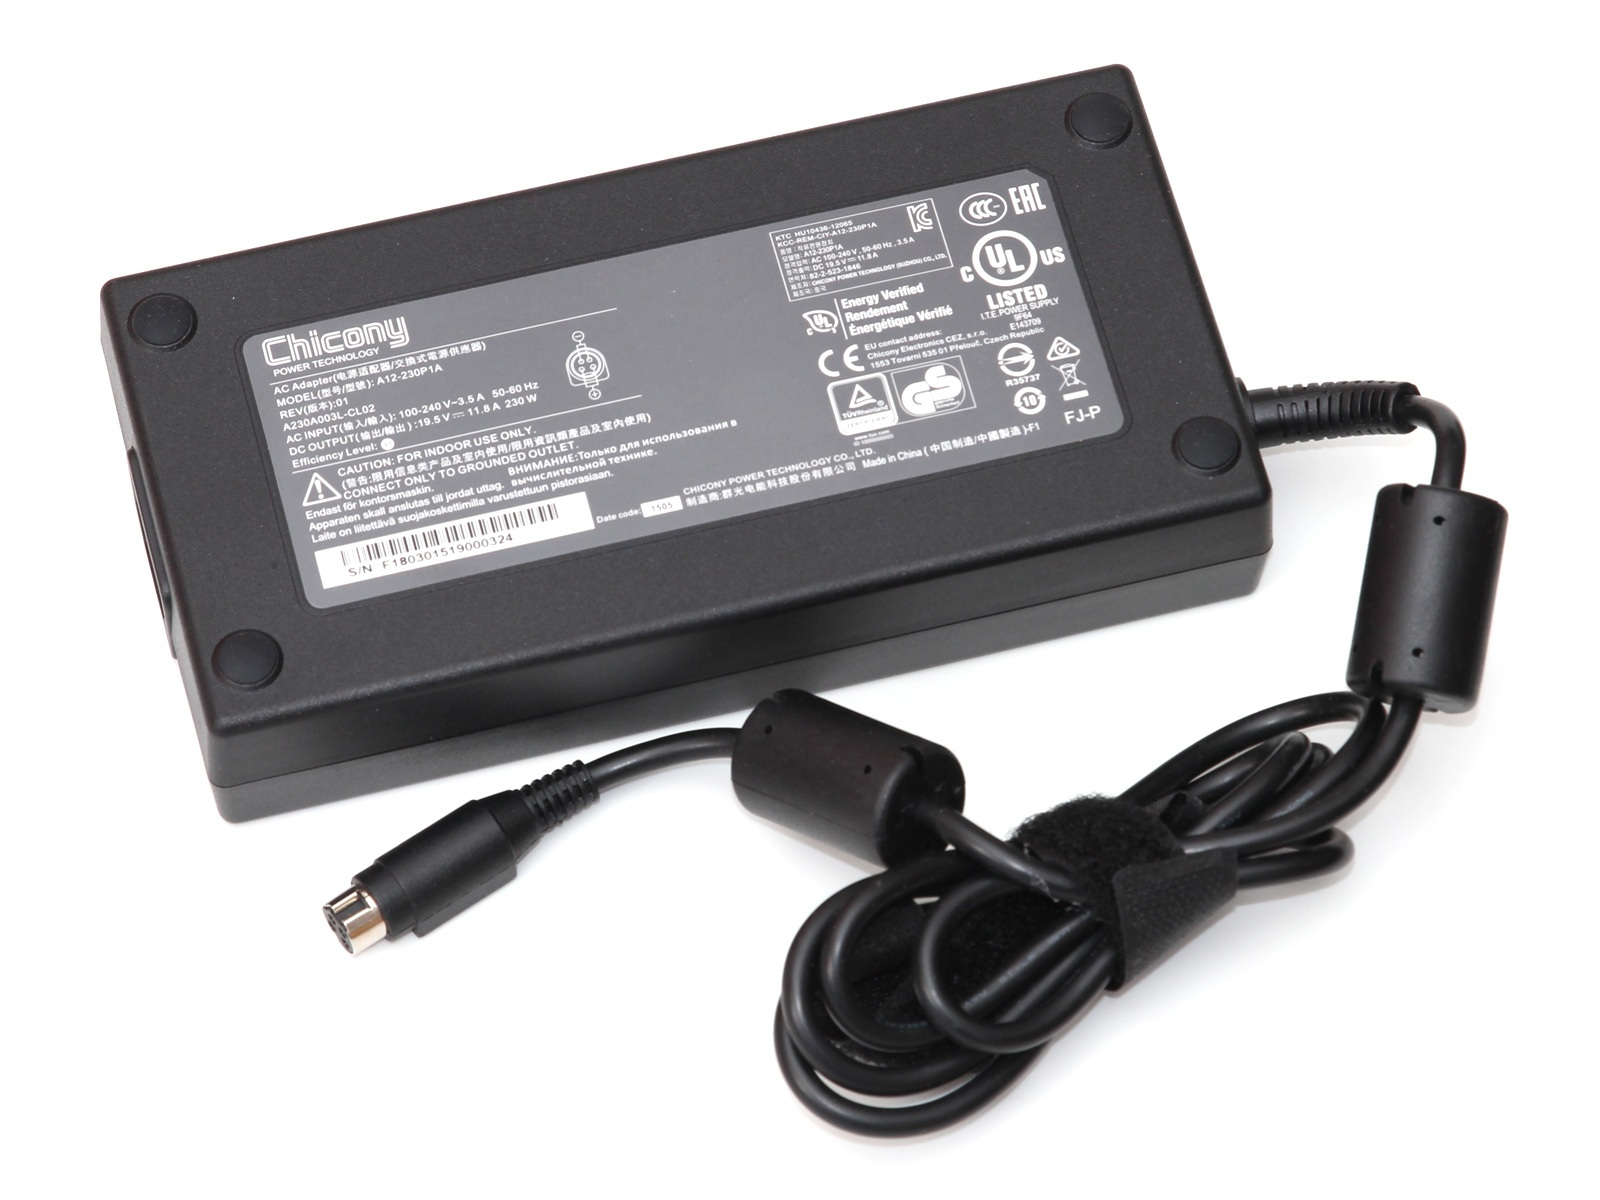 Original 230W Chicony A12-230P1A A230A003L Adapter Charger